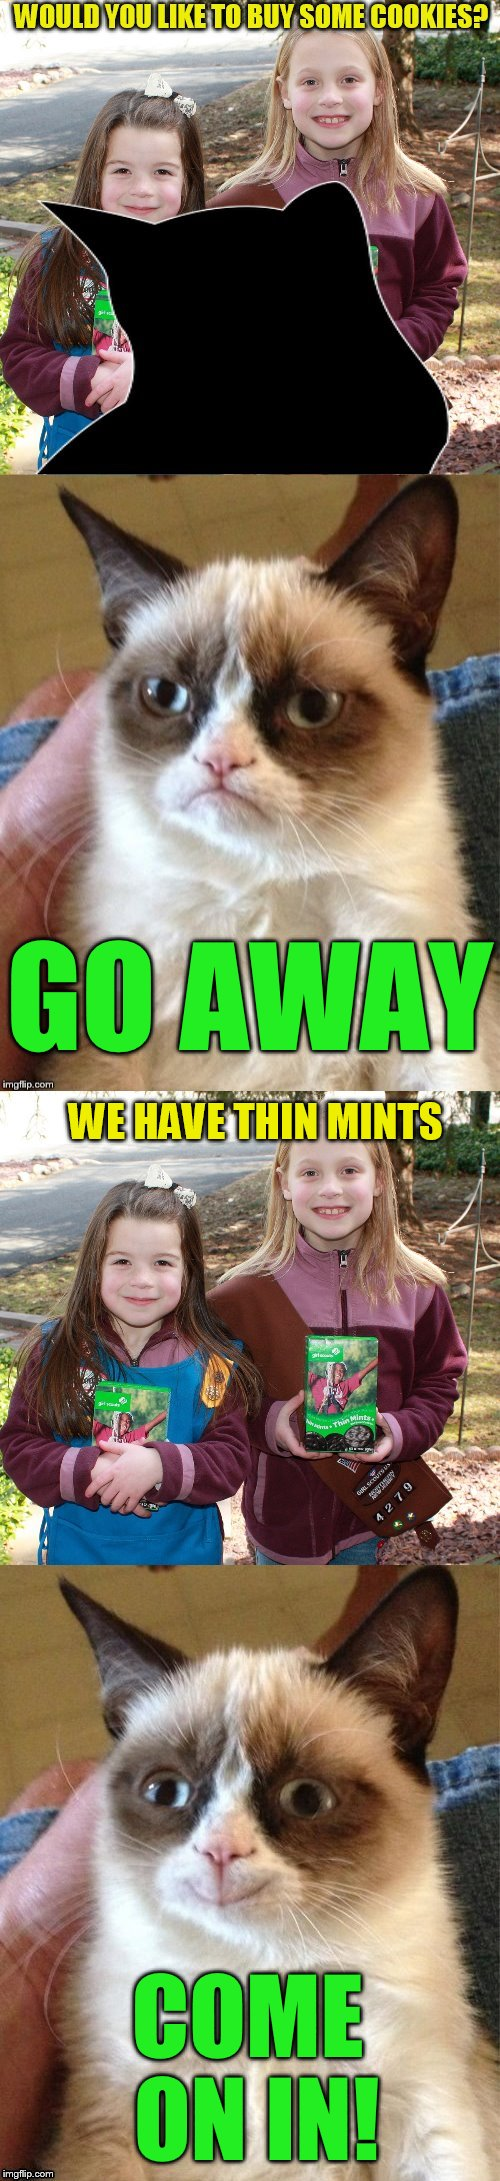 GO AWAY WE HAVE THIN MINTS COME ON IN! | made w/ Imgflip meme maker